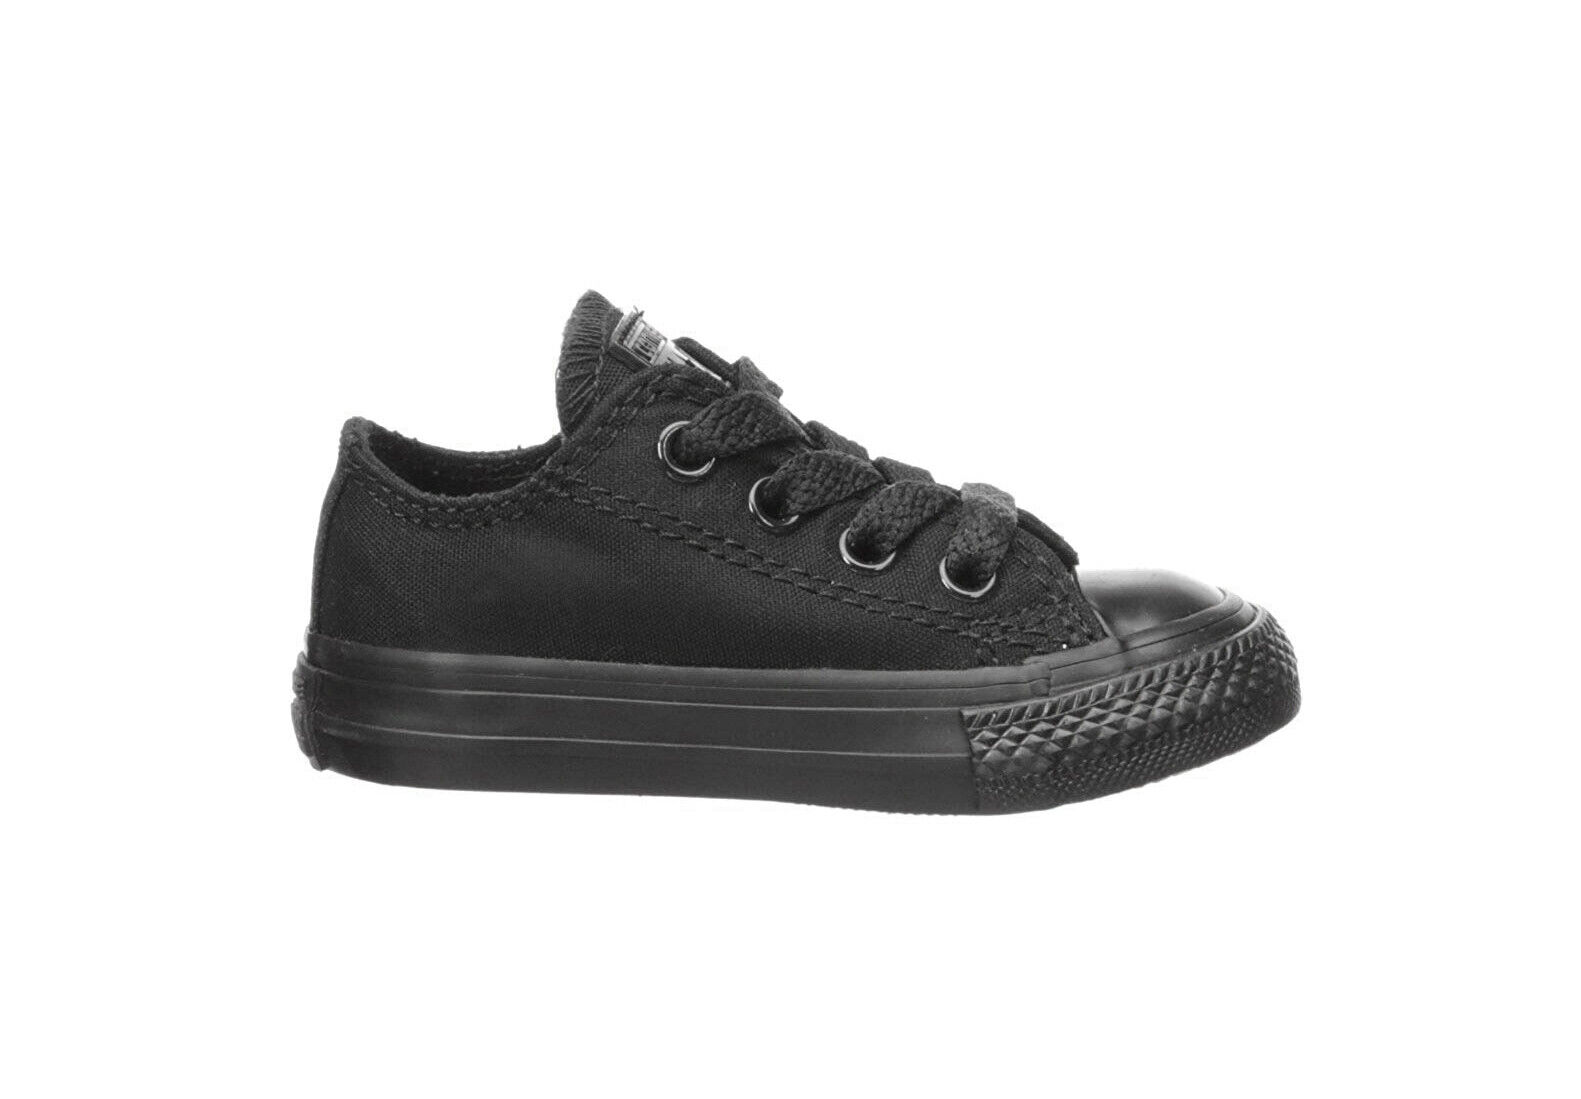 Converse All Star Low Chucks Infant Toddler All Black Canvas Boys Shoes 714786F 1